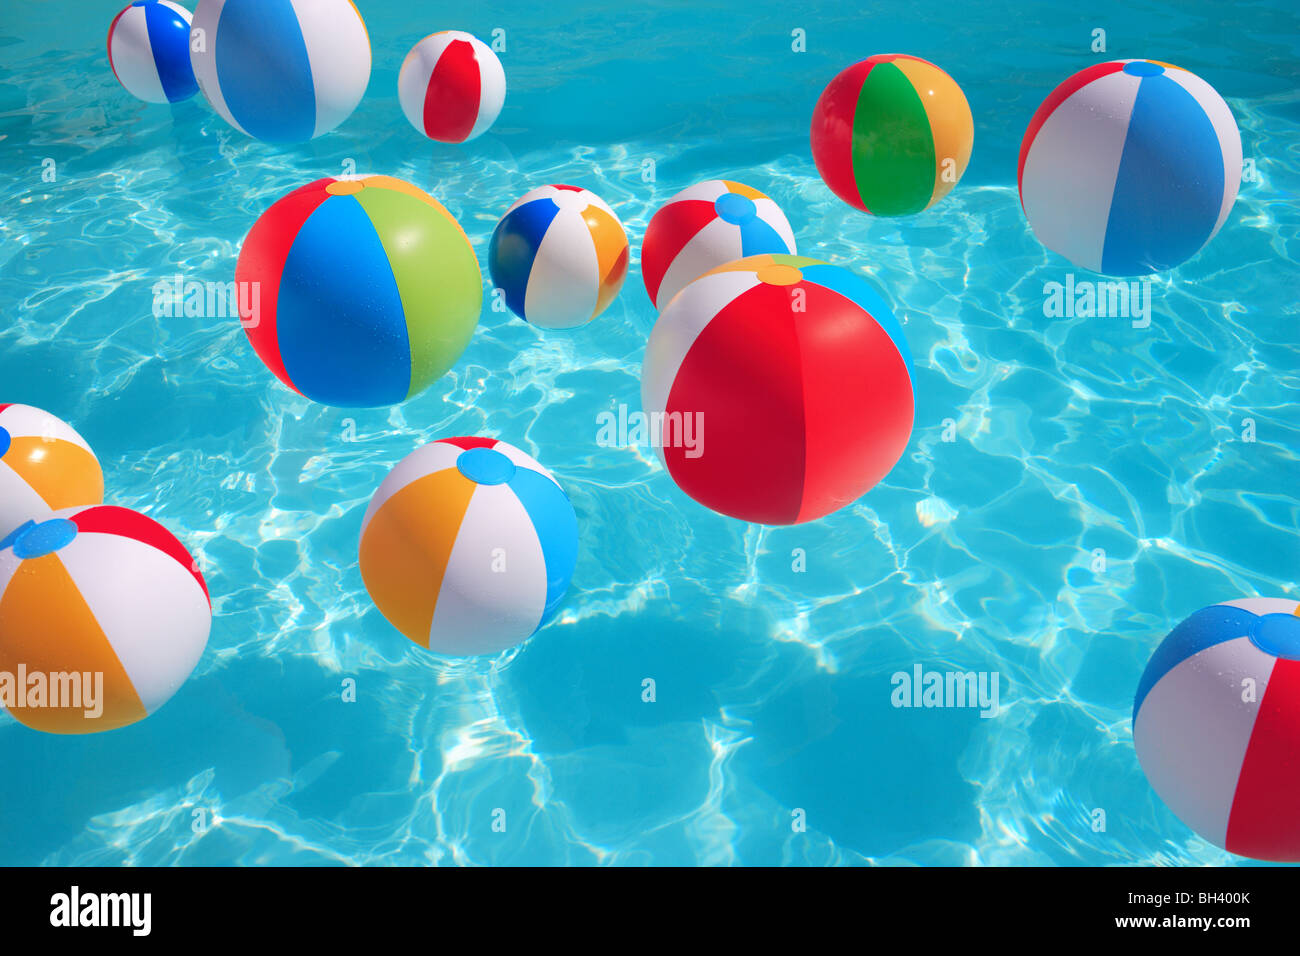 Brightly colored inflatable beach balls randomly floating in a blue water swimming pool - Stock Image